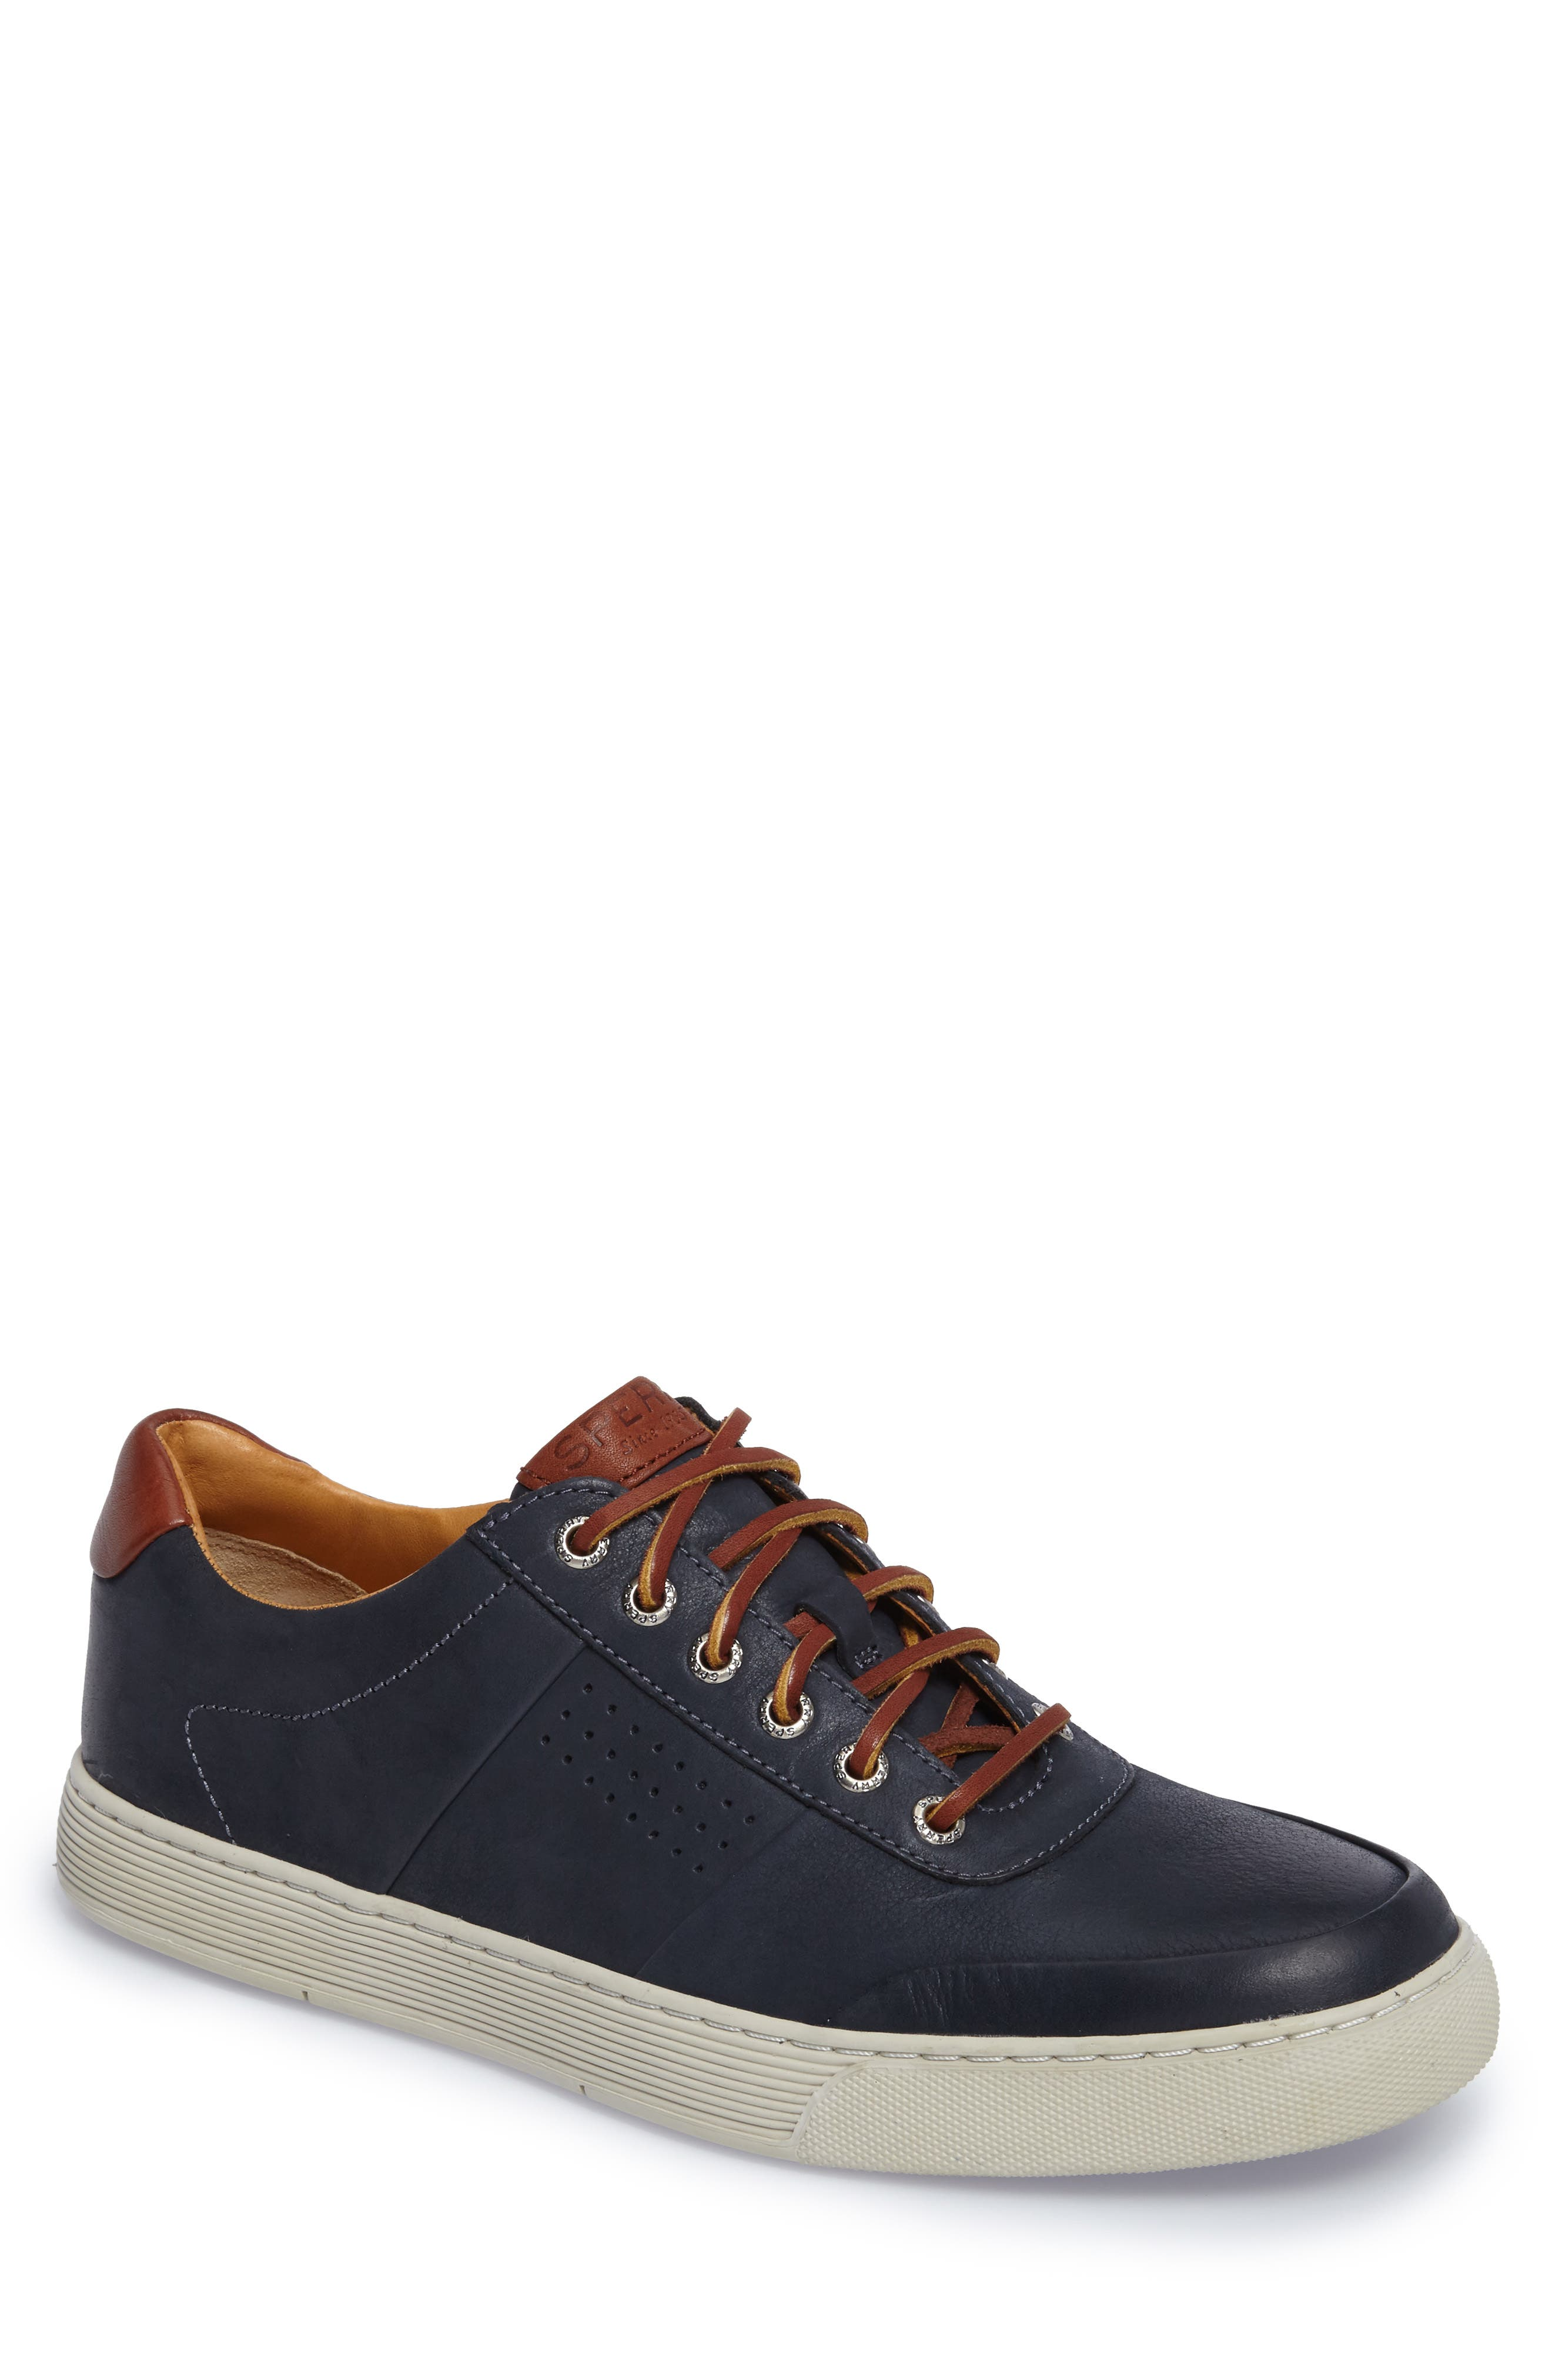 Gold Cup Sport Sneaker,                             Main thumbnail 1, color,                             410